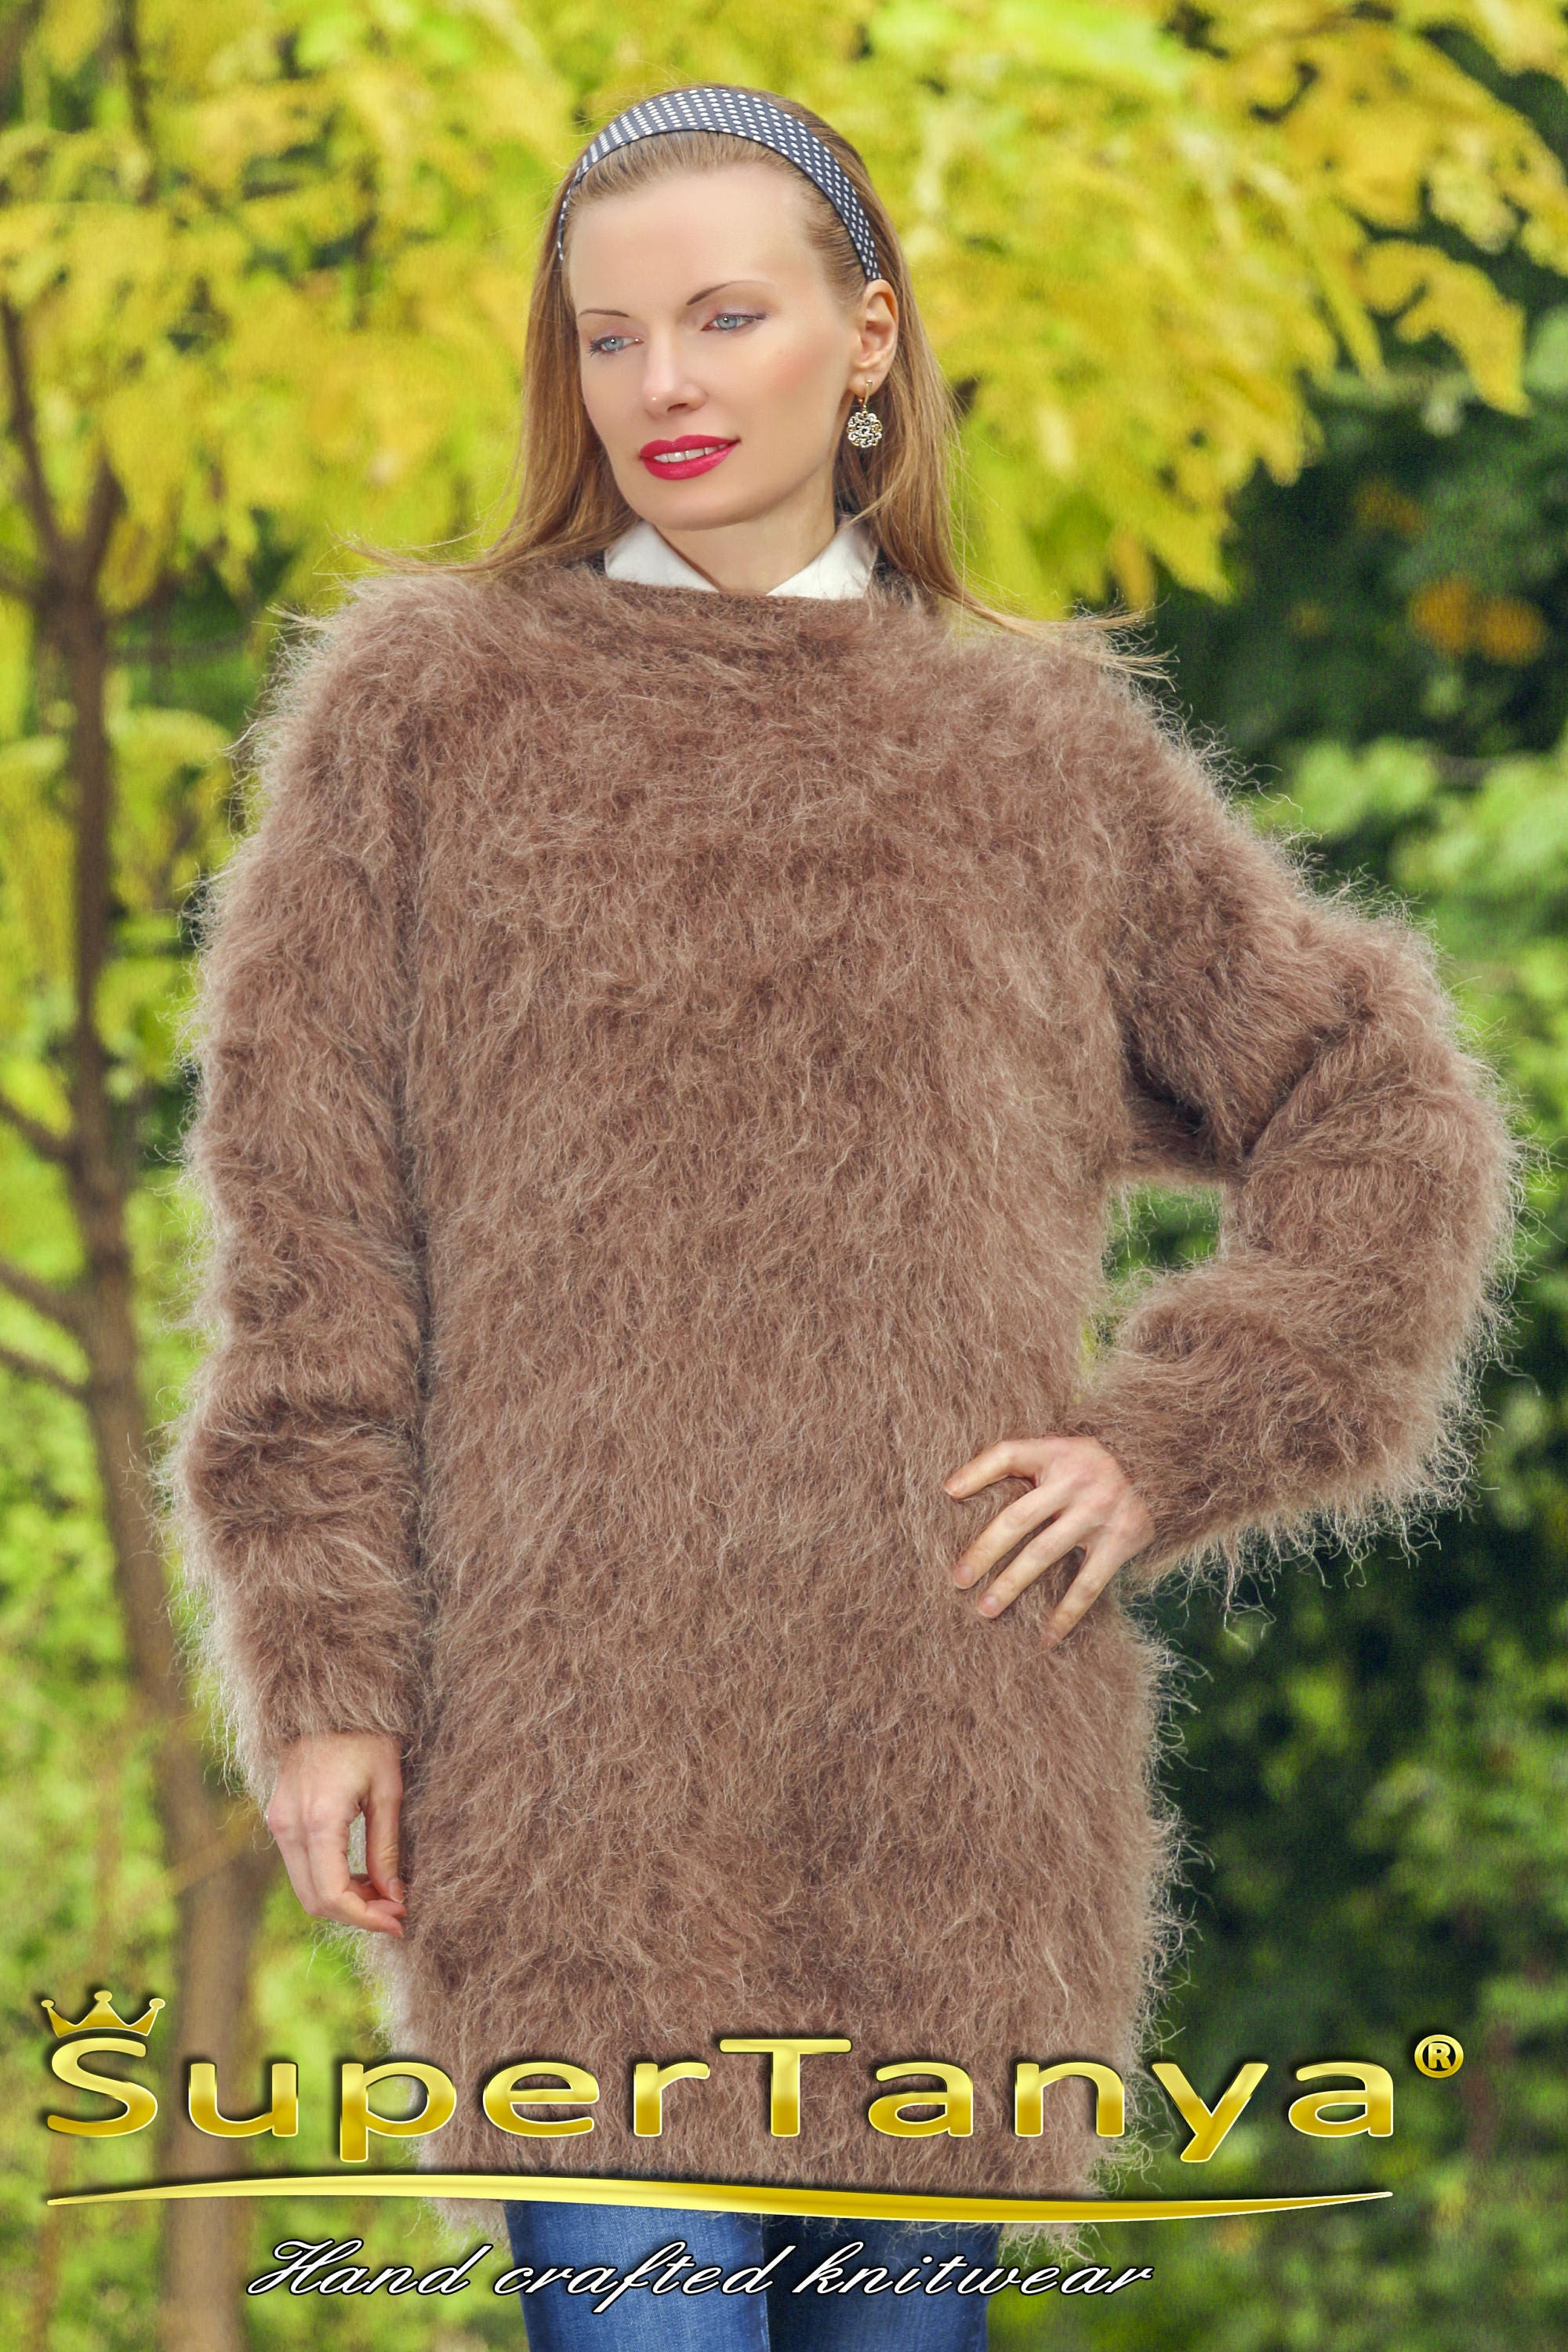 supertanya luxury brown fuzzy mohair sweater dress. Black Bedroom Furniture Sets. Home Design Ideas